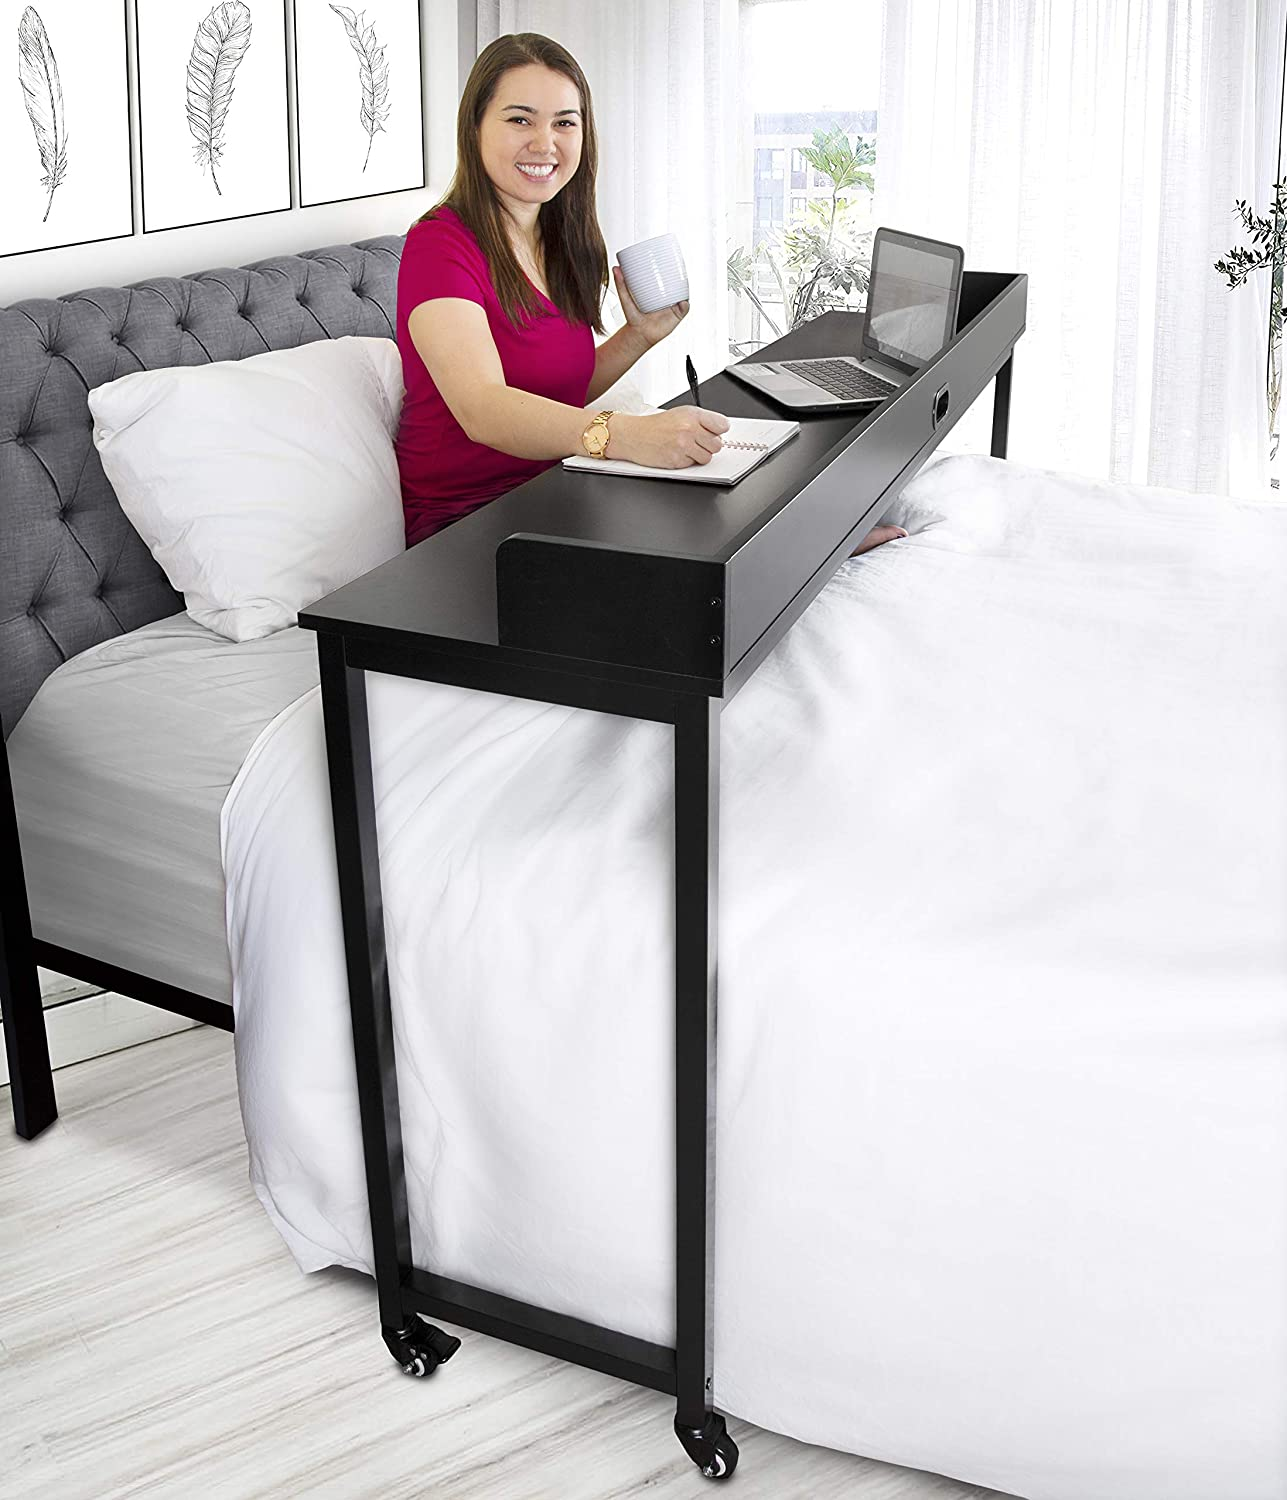 Joy Overbed Table with Wheels - Height Adjustable Rolling Bed Desk for Full/Queen Beds